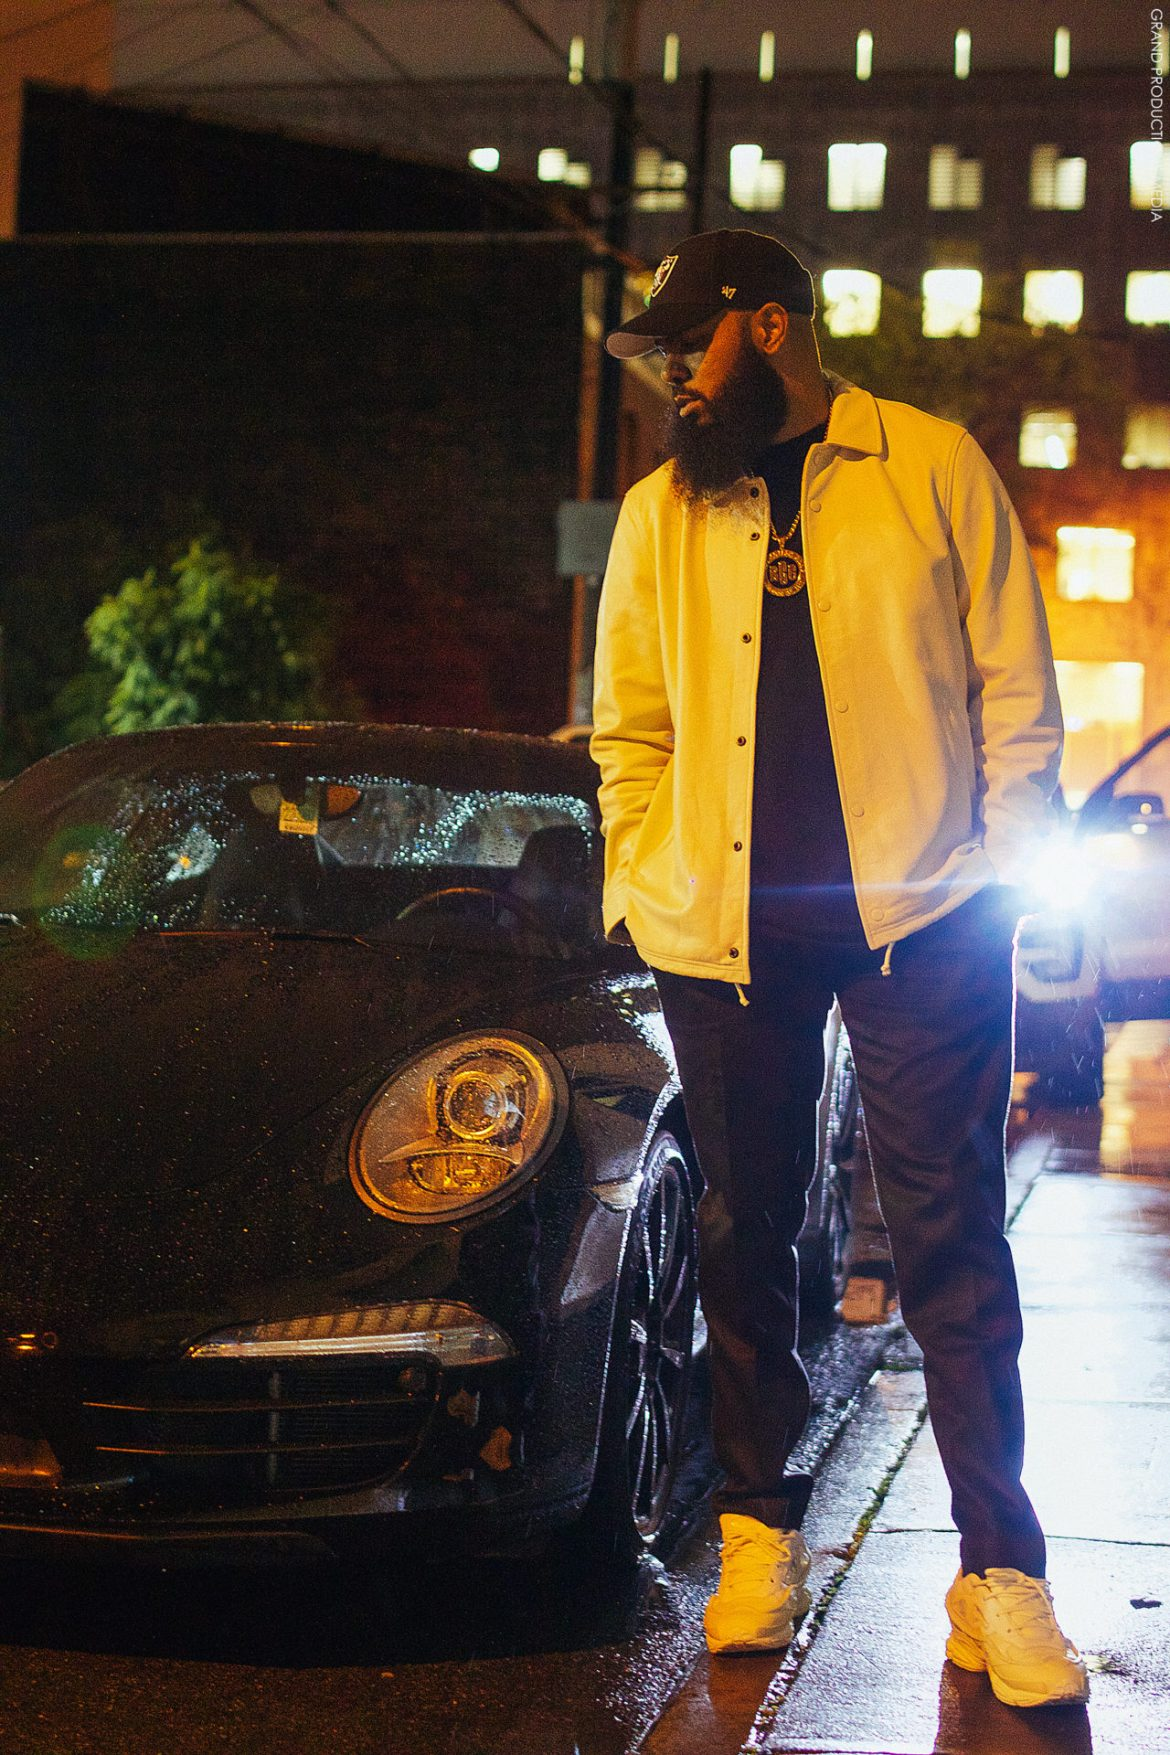 Stalley in the Raf Simons x Adidas Ozweego Bunny Sneakers